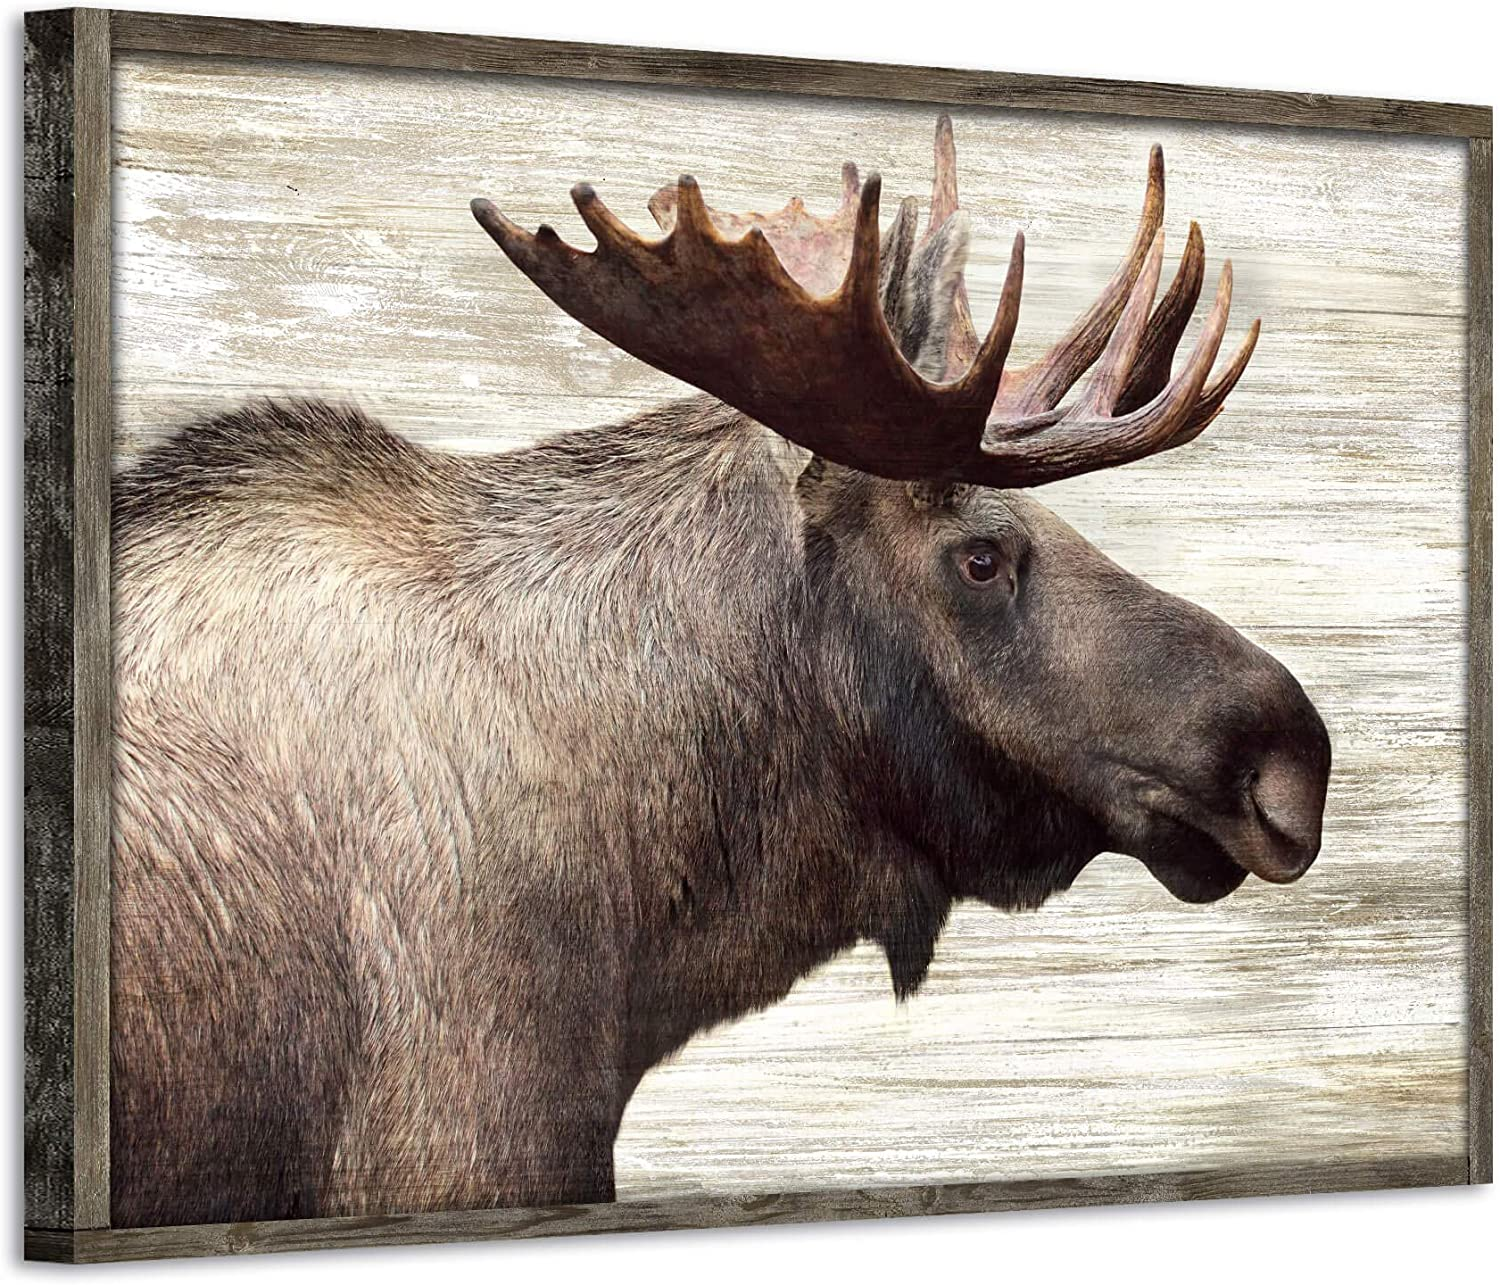 """Wildlife Painting Wood Wall Art: Majestic Moose Artwork Pictures Framed Prints on Wooden Panel for Bedroom (36""""W x 24''H, Multi-Sized / Material)"""